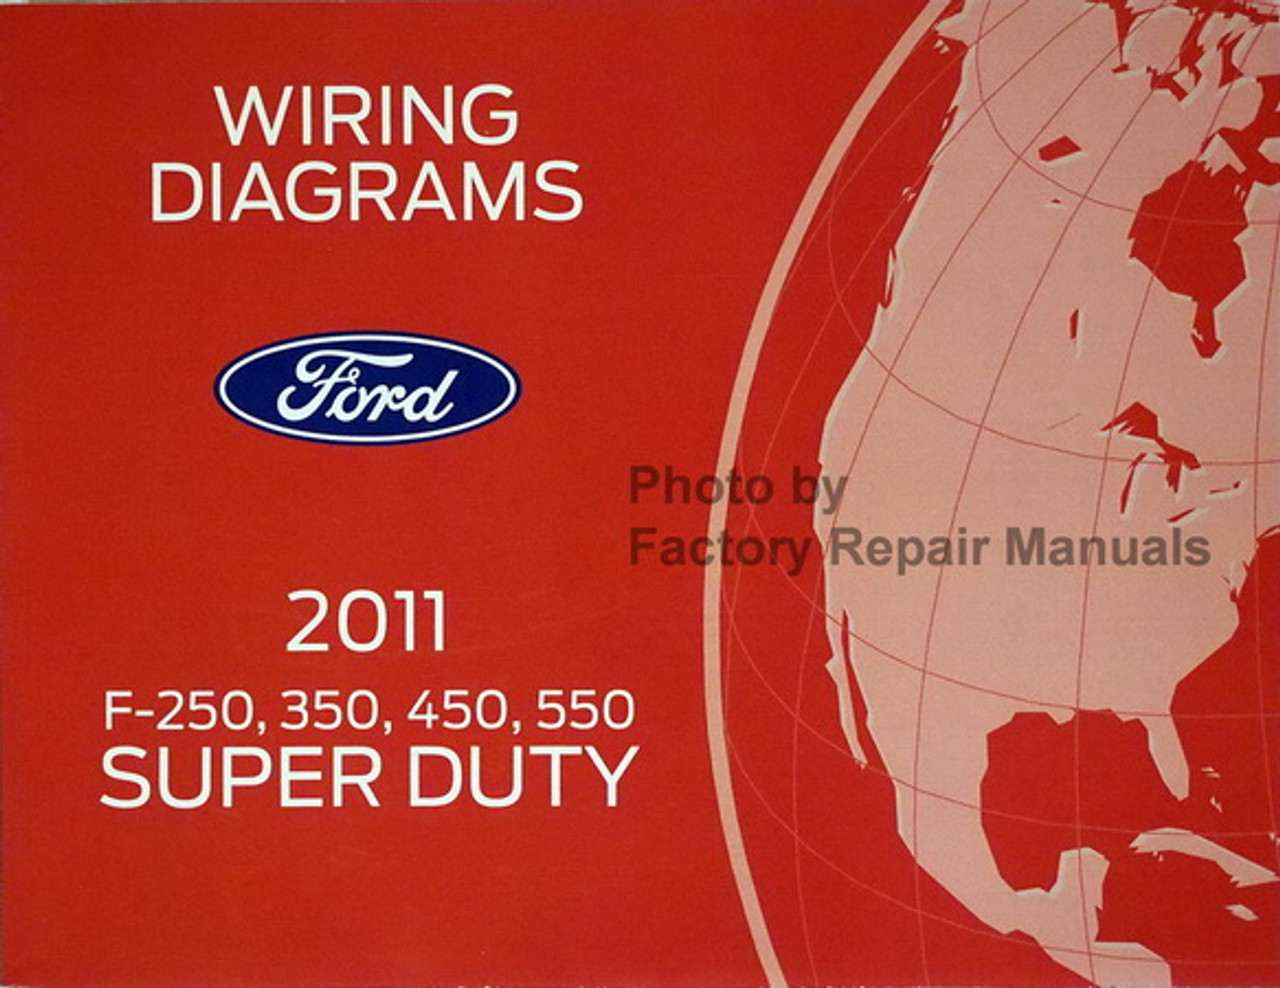 2011 Ford F250 F350 F450 F550 Super Duty Truck Electrical Wiring Diagrams New